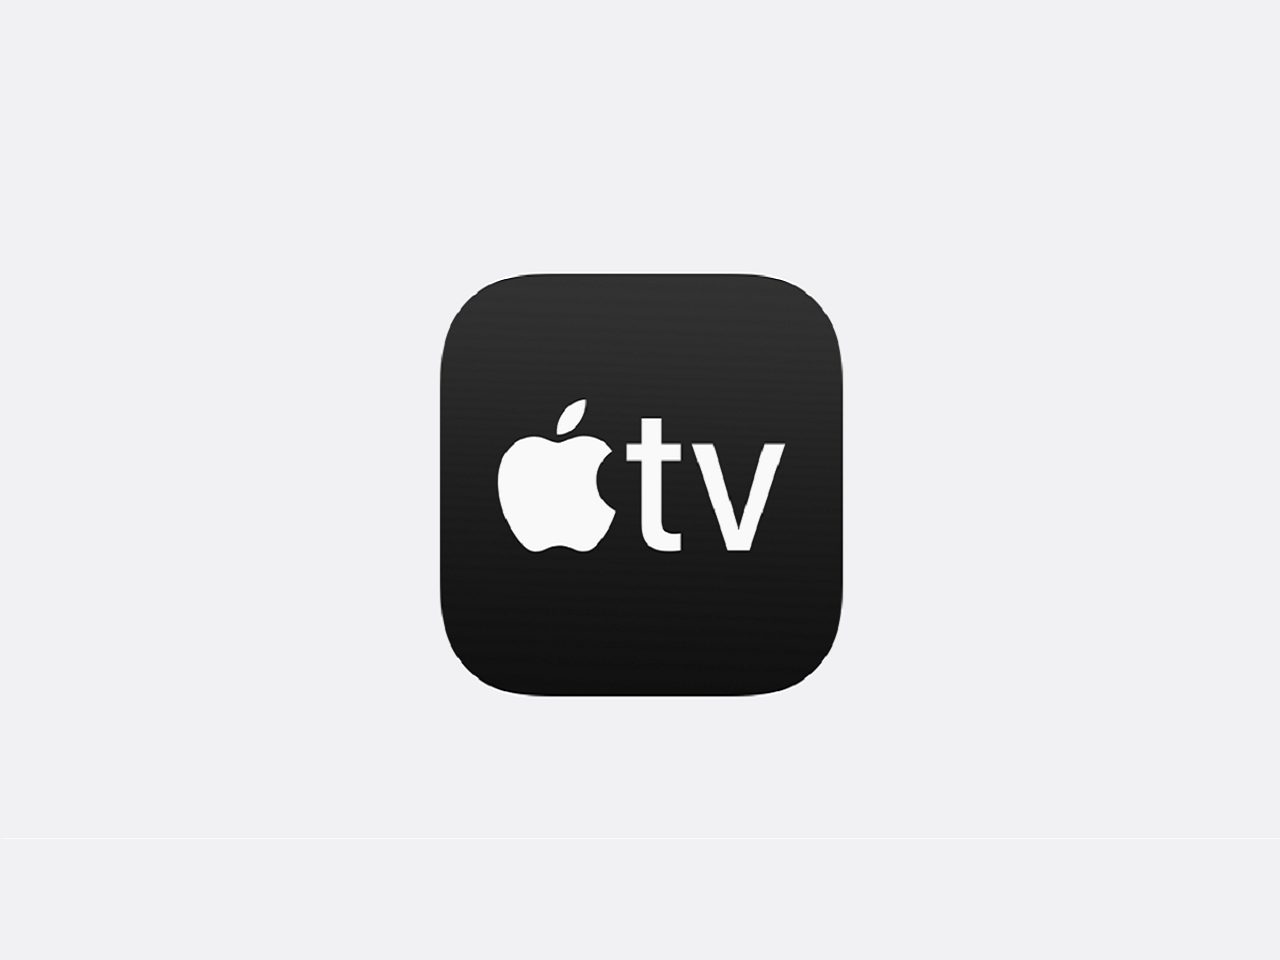 cómo configurar apple tv